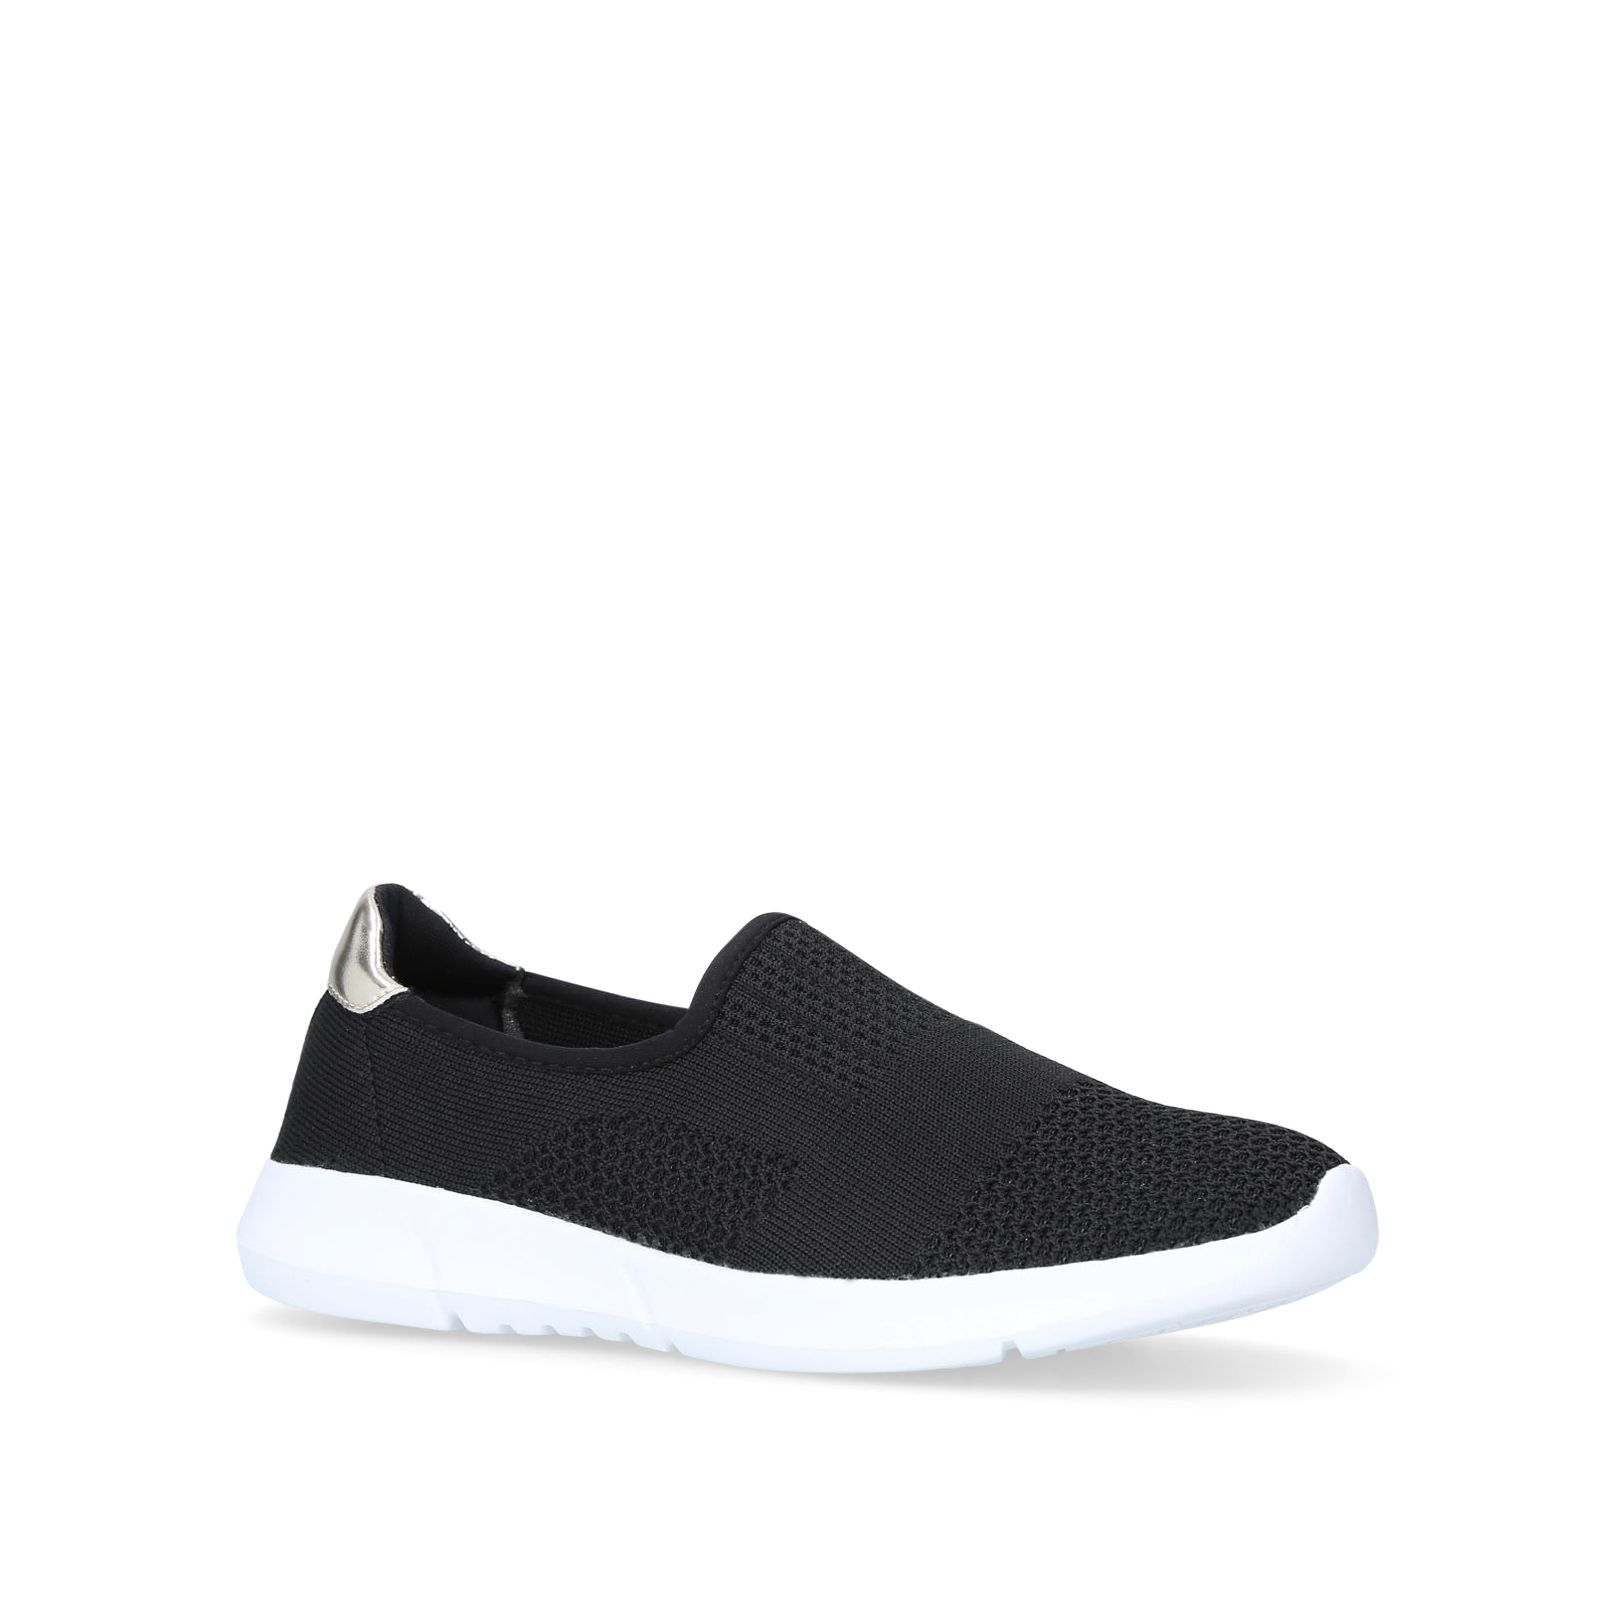 Carvela Comfort Carly Trainers, Black